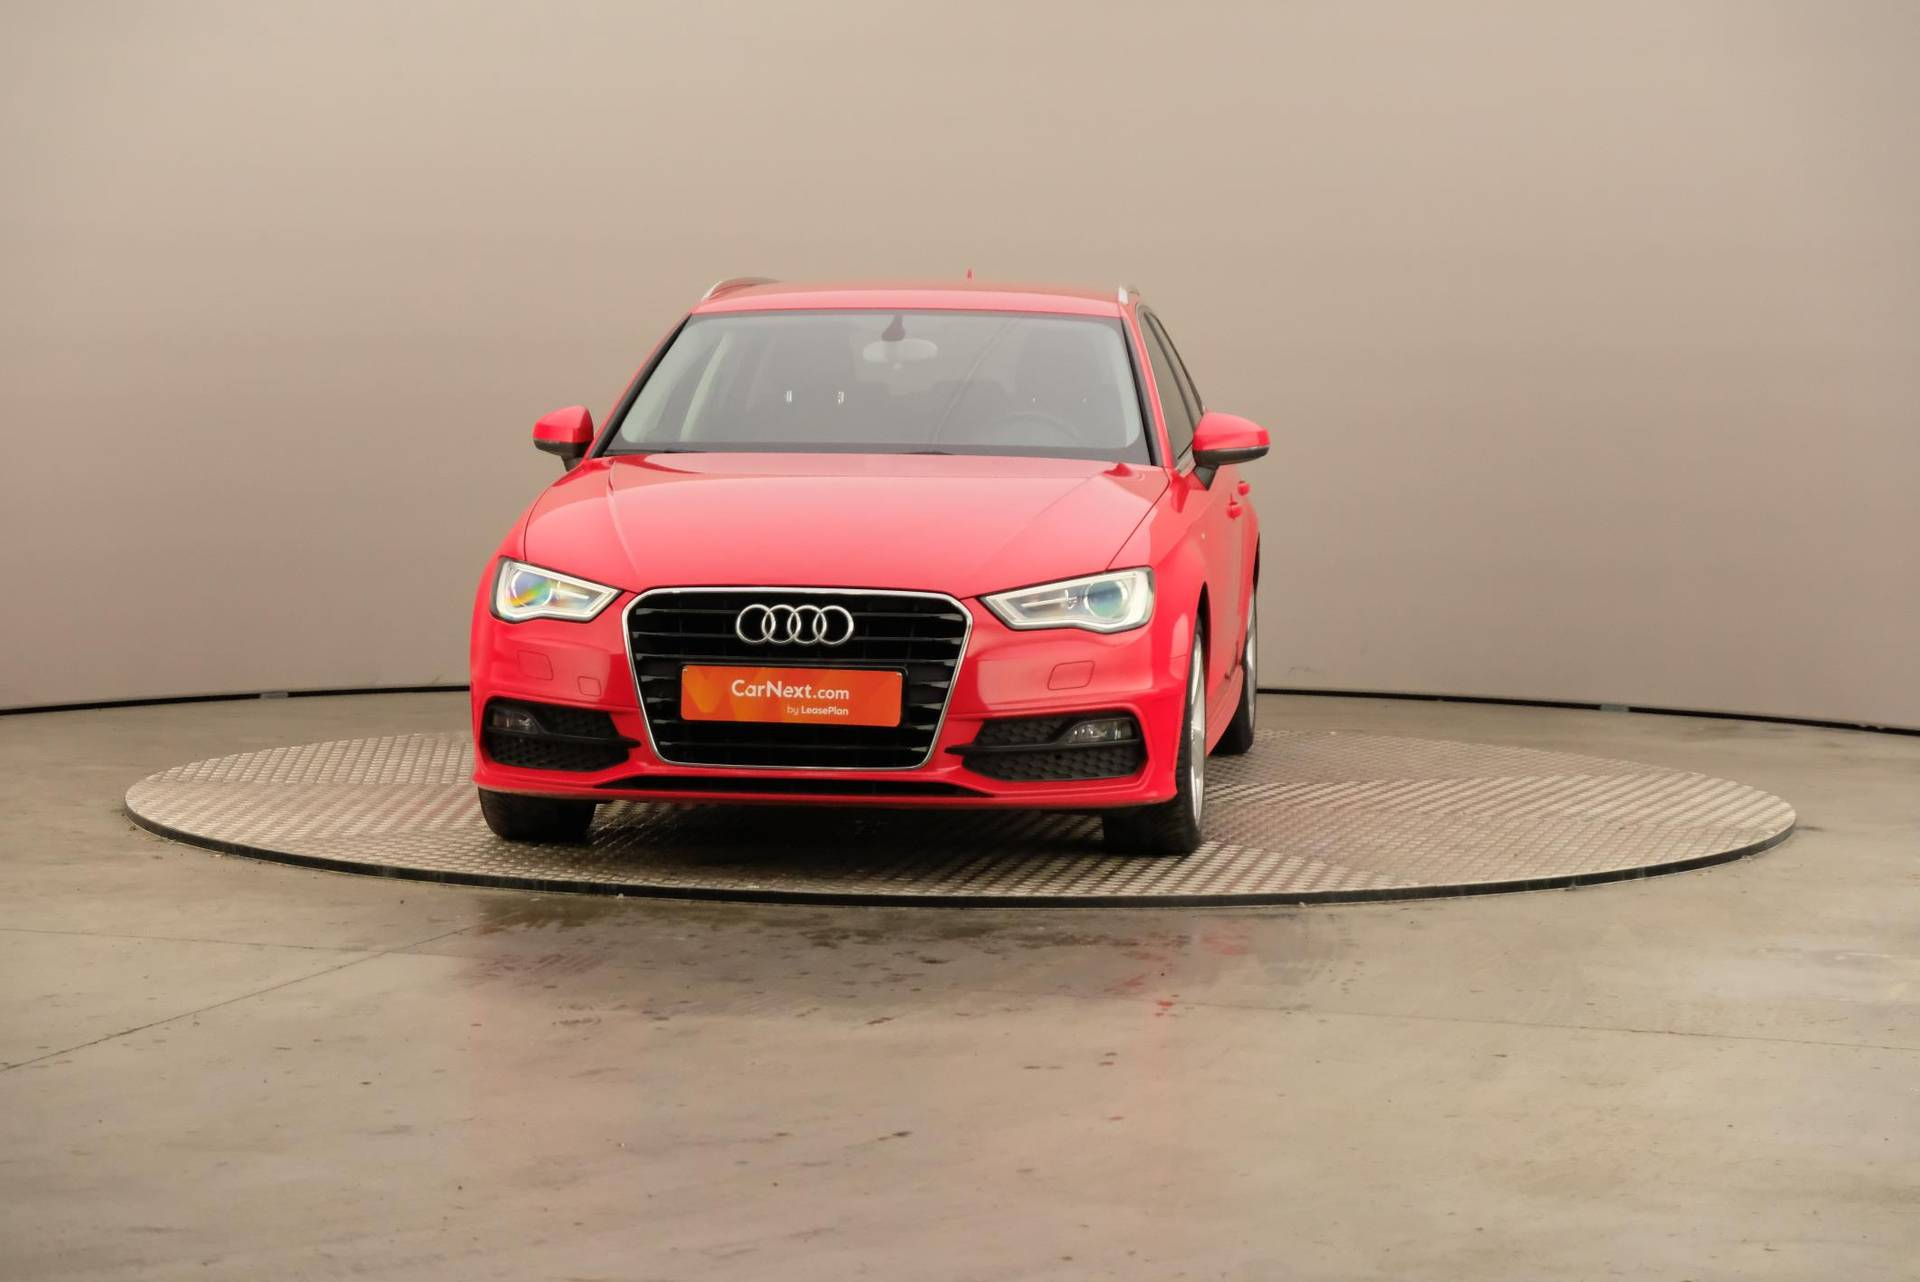 Audi A3 1.6 TDi Ambition PACK SPORT DESIGN XENON GPS PDC CRUISE CONTROL, 360-image32